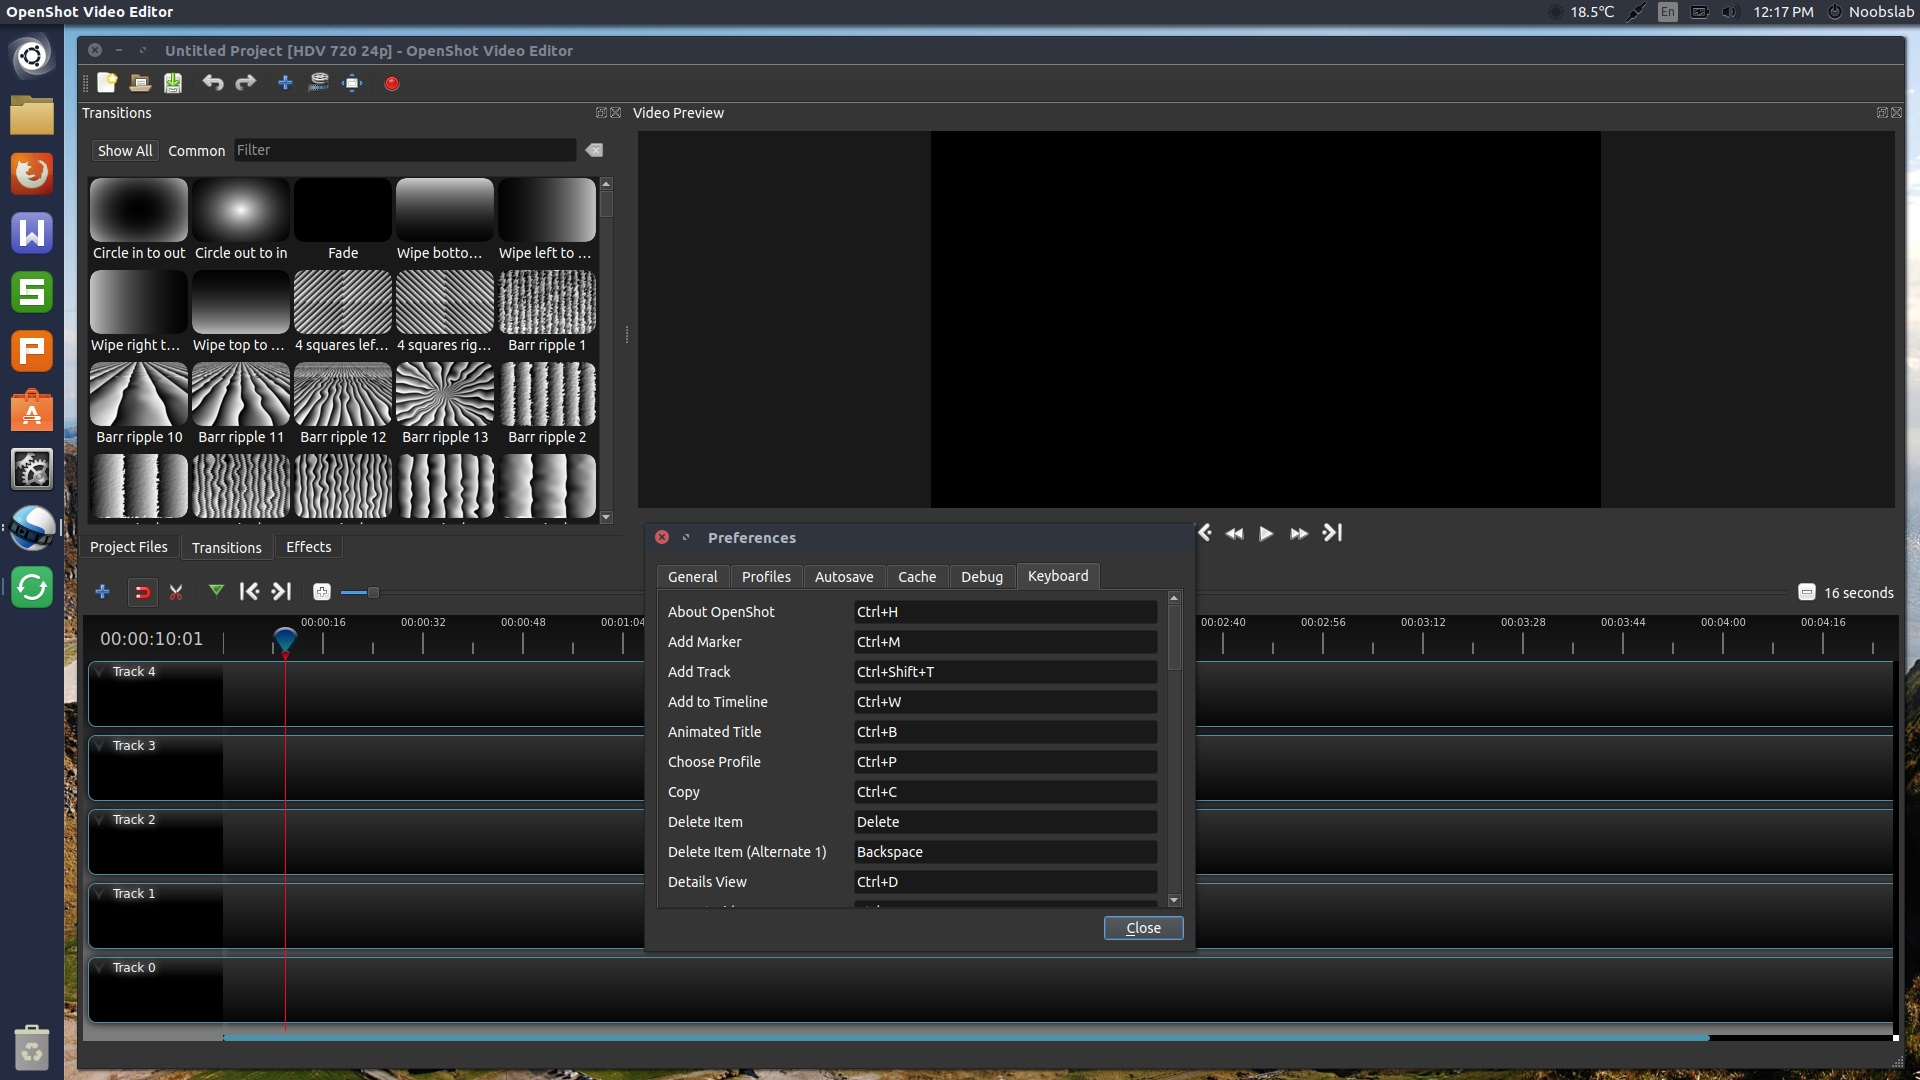 OpenShot Video Editor Reached to version 2 4 4, Install in